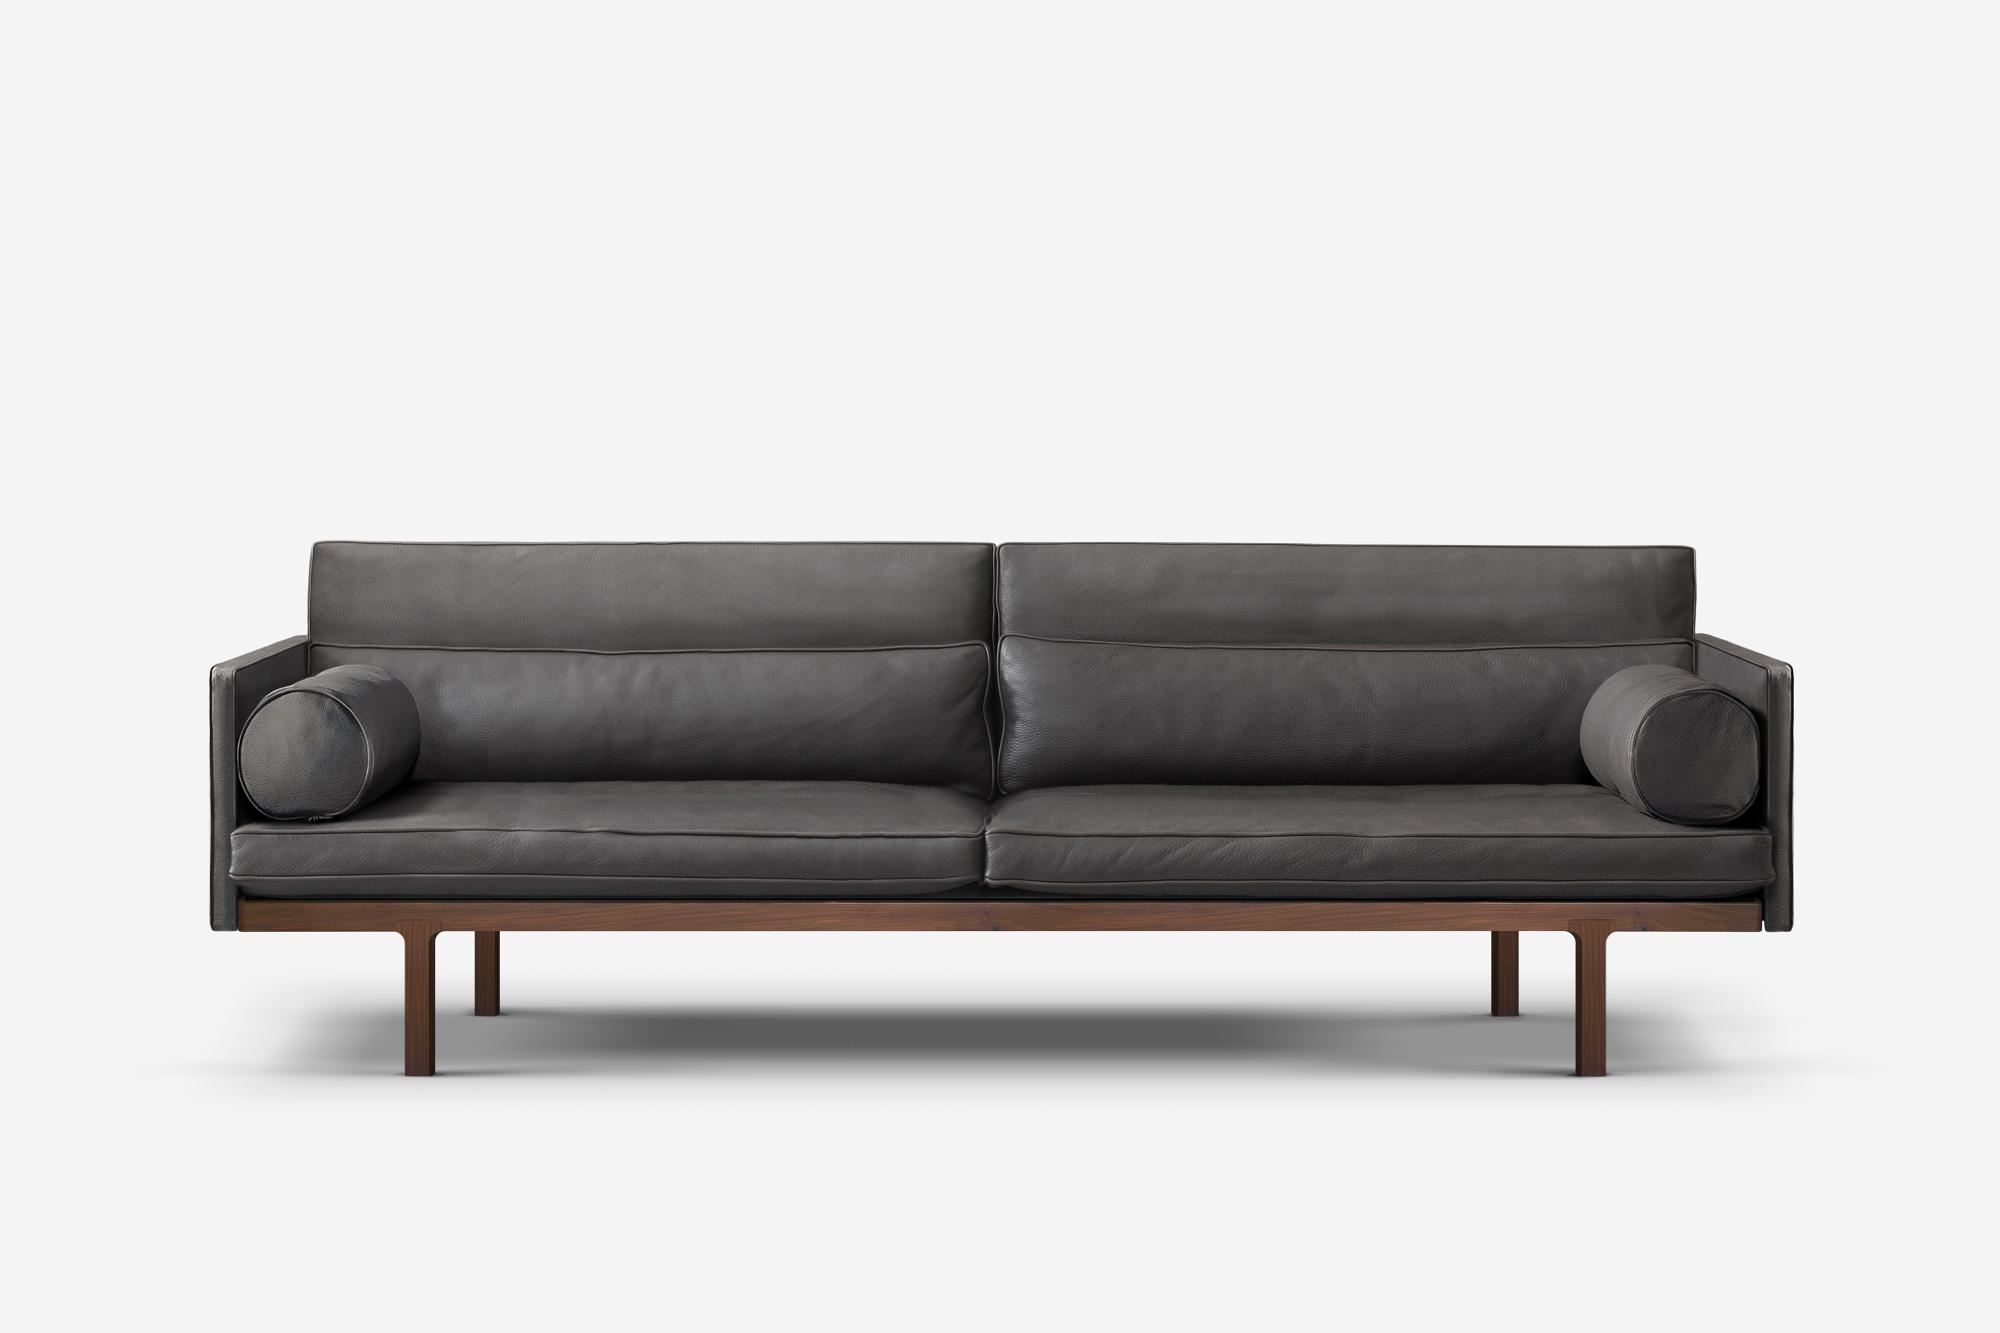 Archive Sofa - Low Back from District